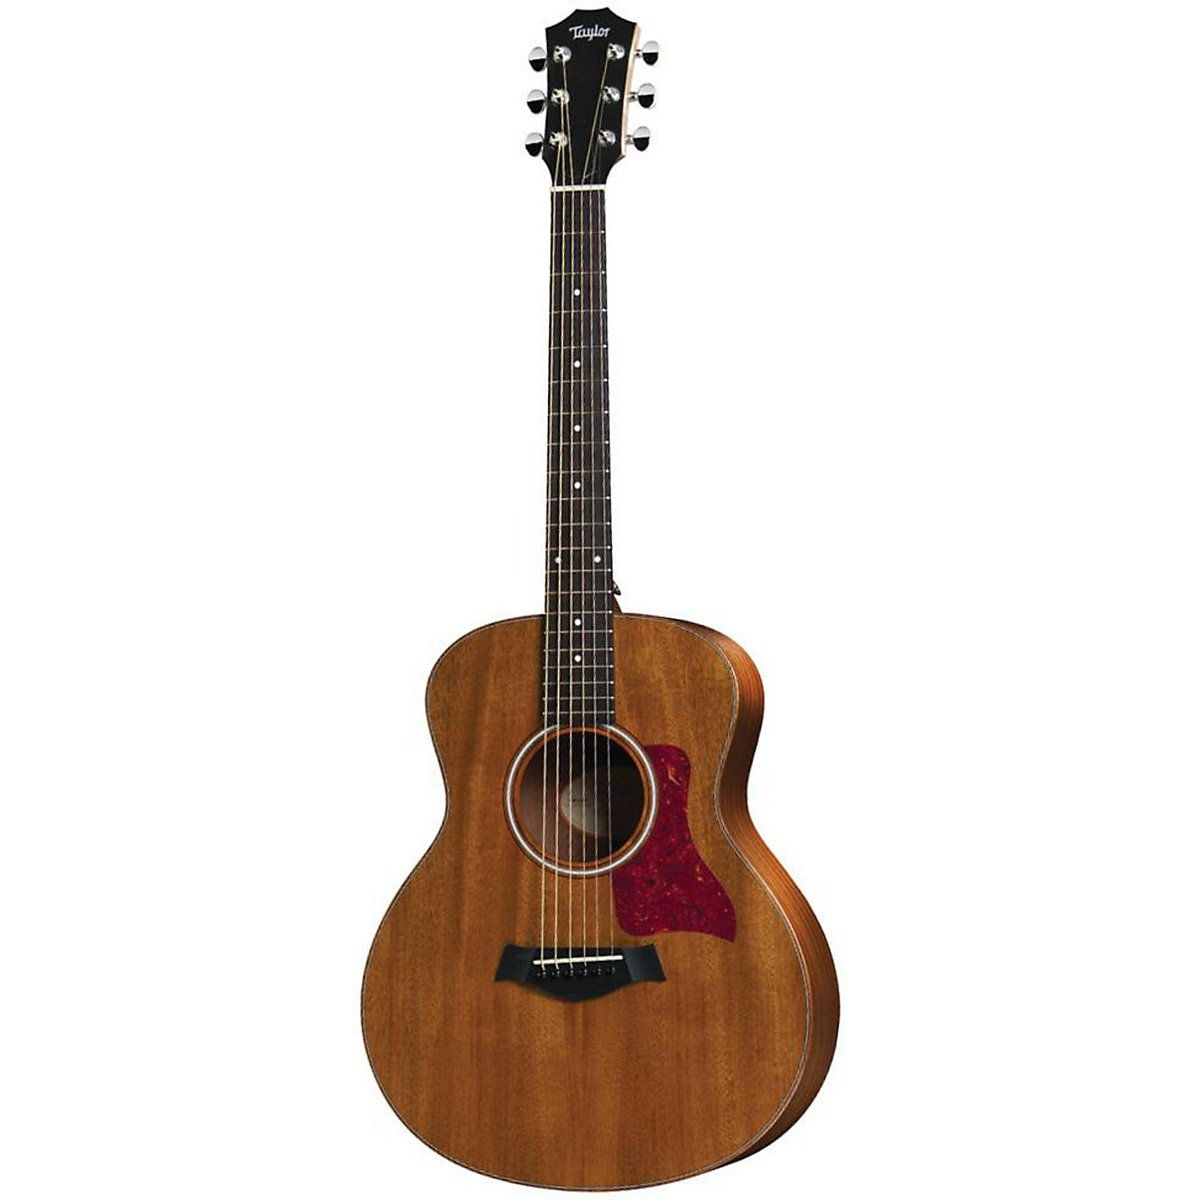 Taylor GS Mini Mahogany GS Mini Acoustic Guitar - best acoustic guitar for beginners under 500